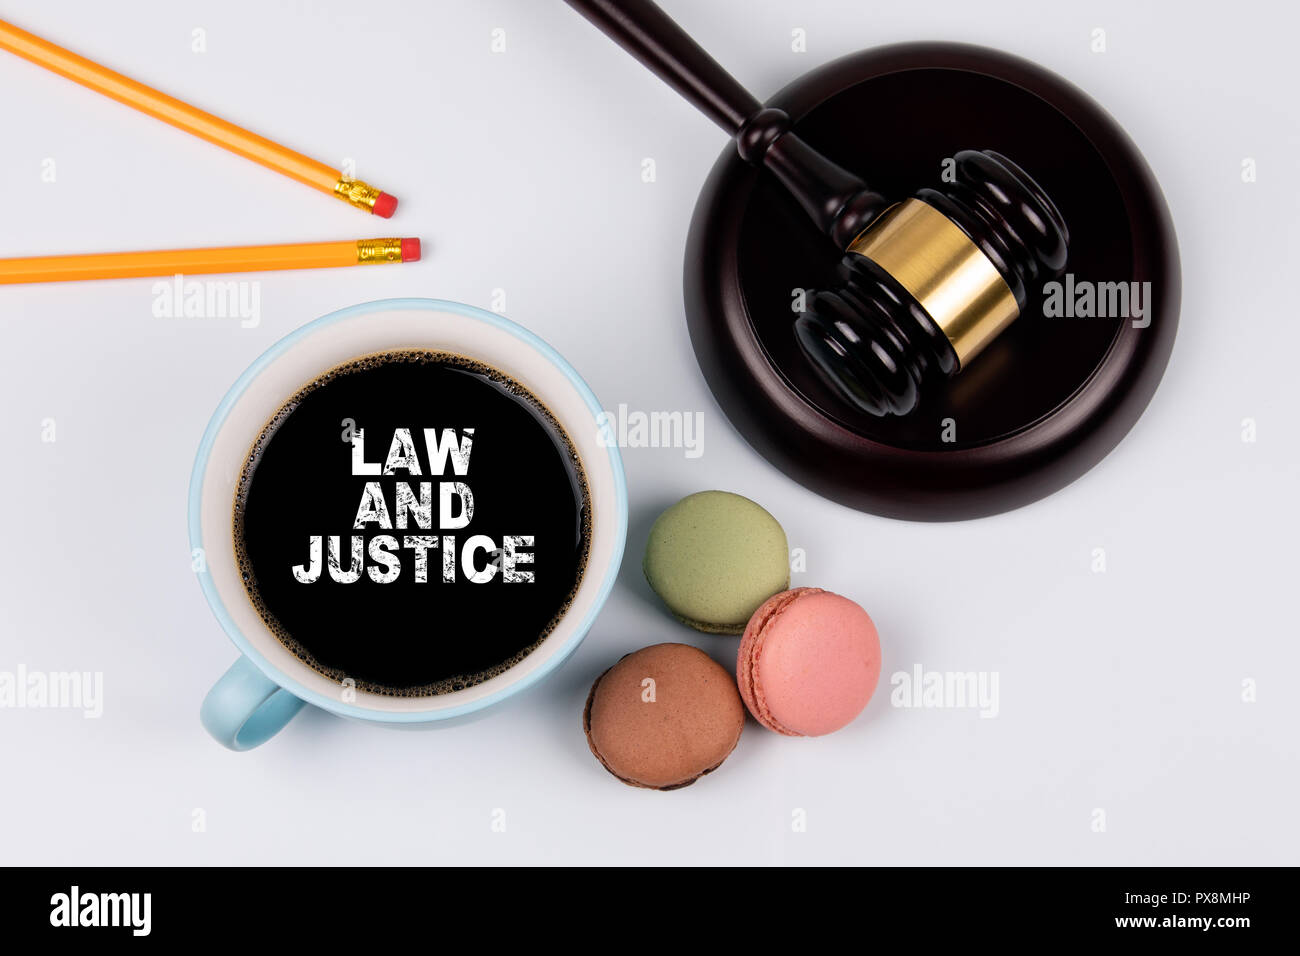 Law and justice concept - Stock Image